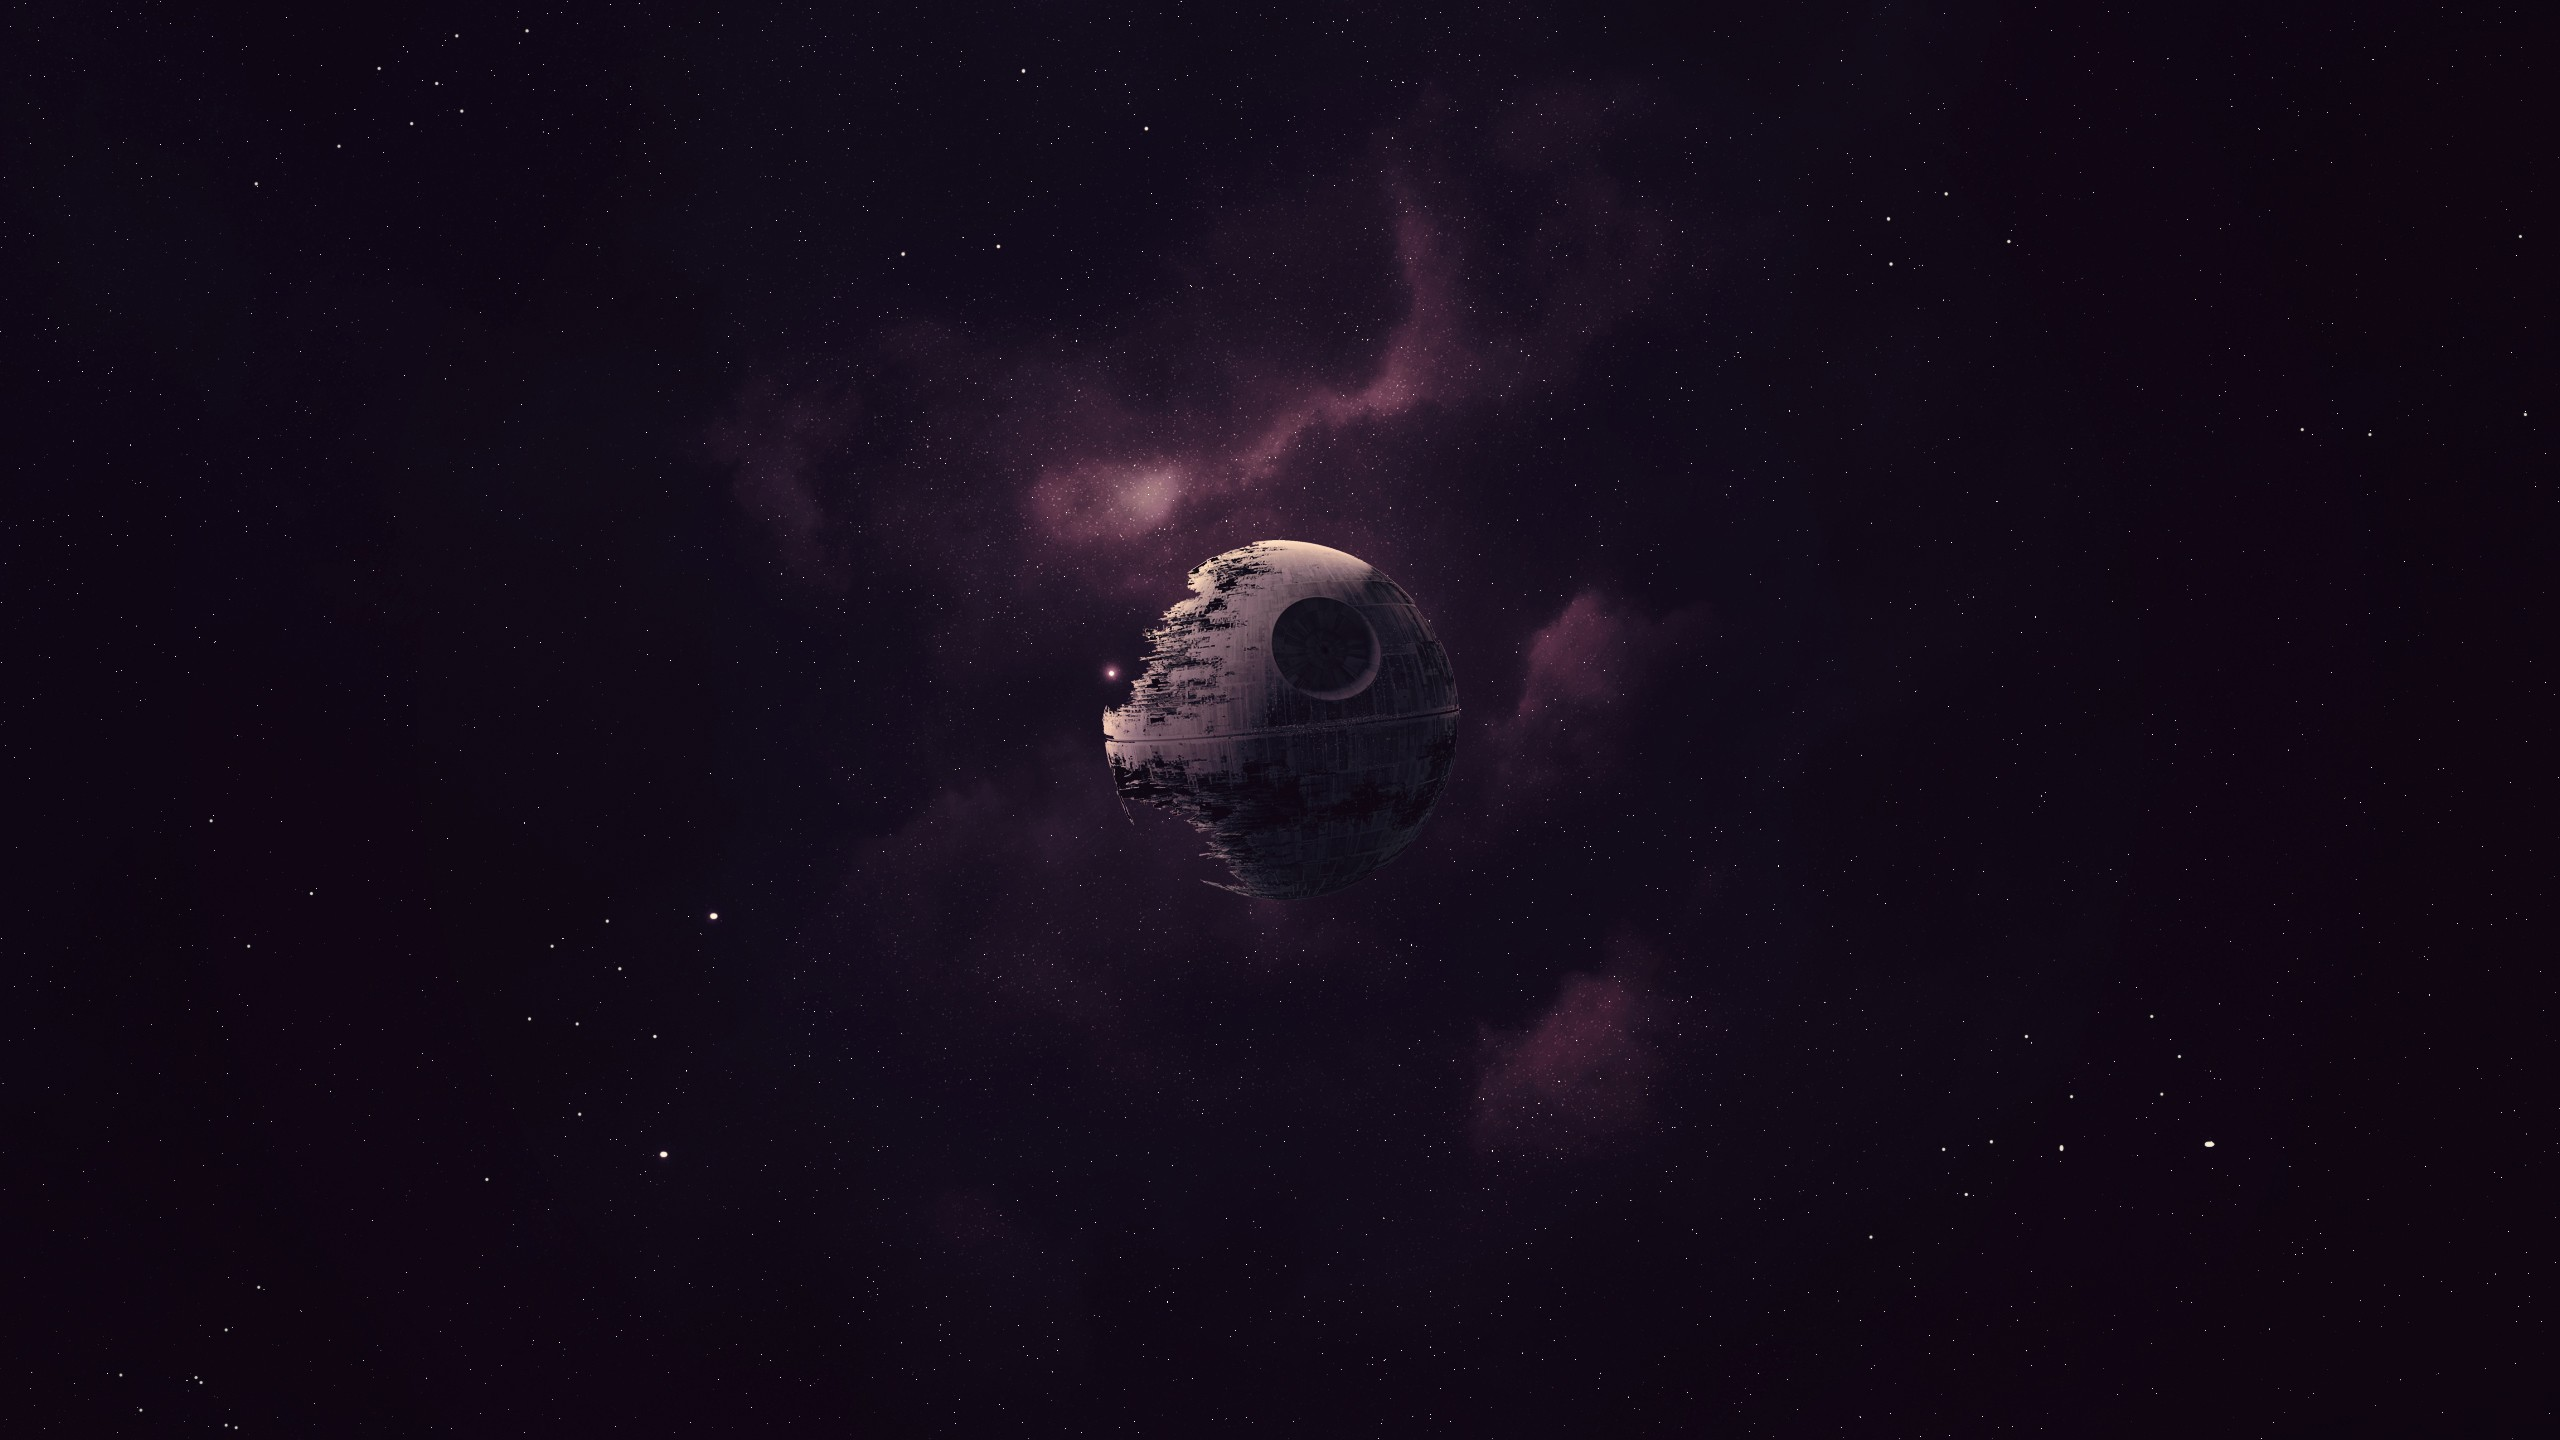 Death Star wallpaper ·① Download free stunning wallpapers ...